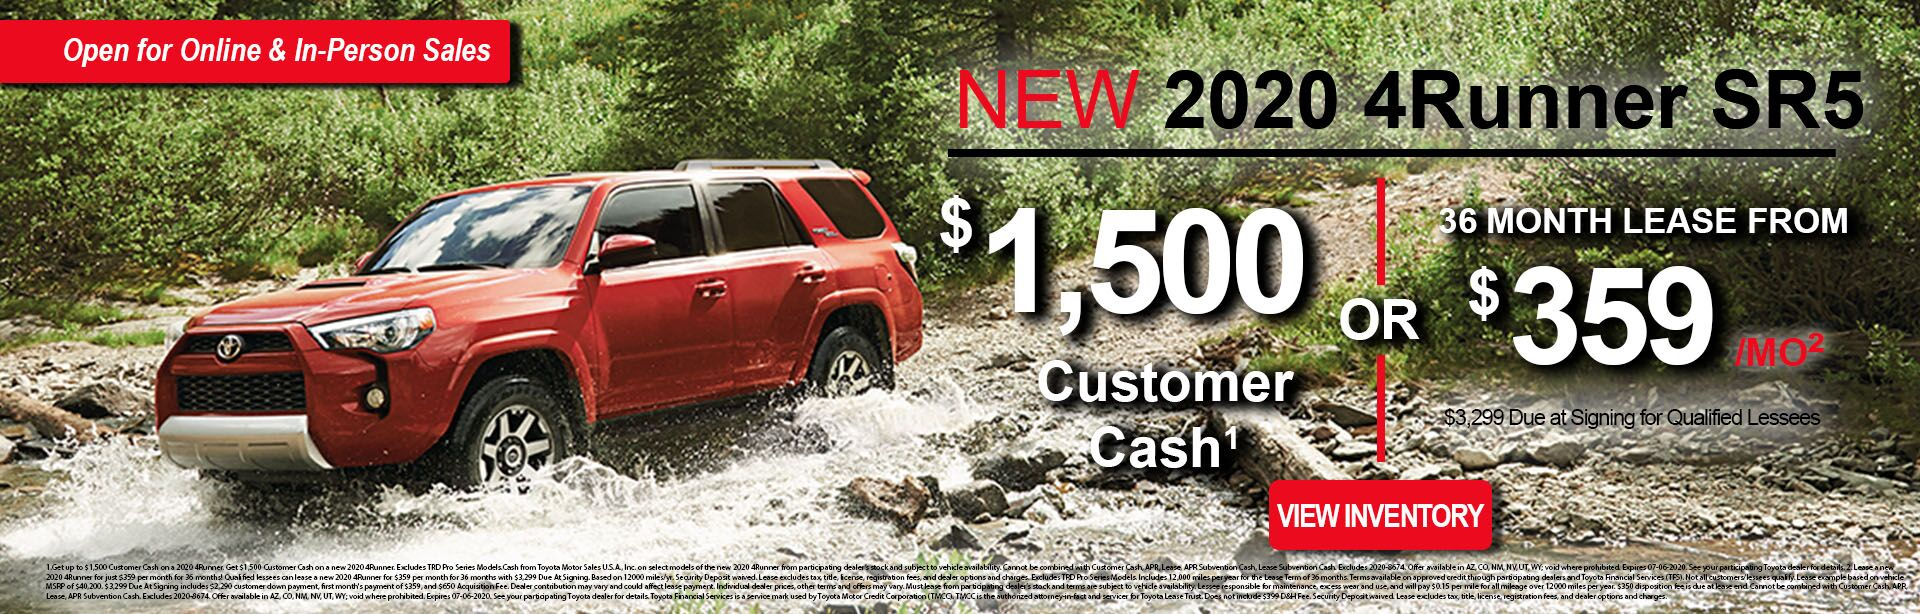 June 4Runner Lease Offer